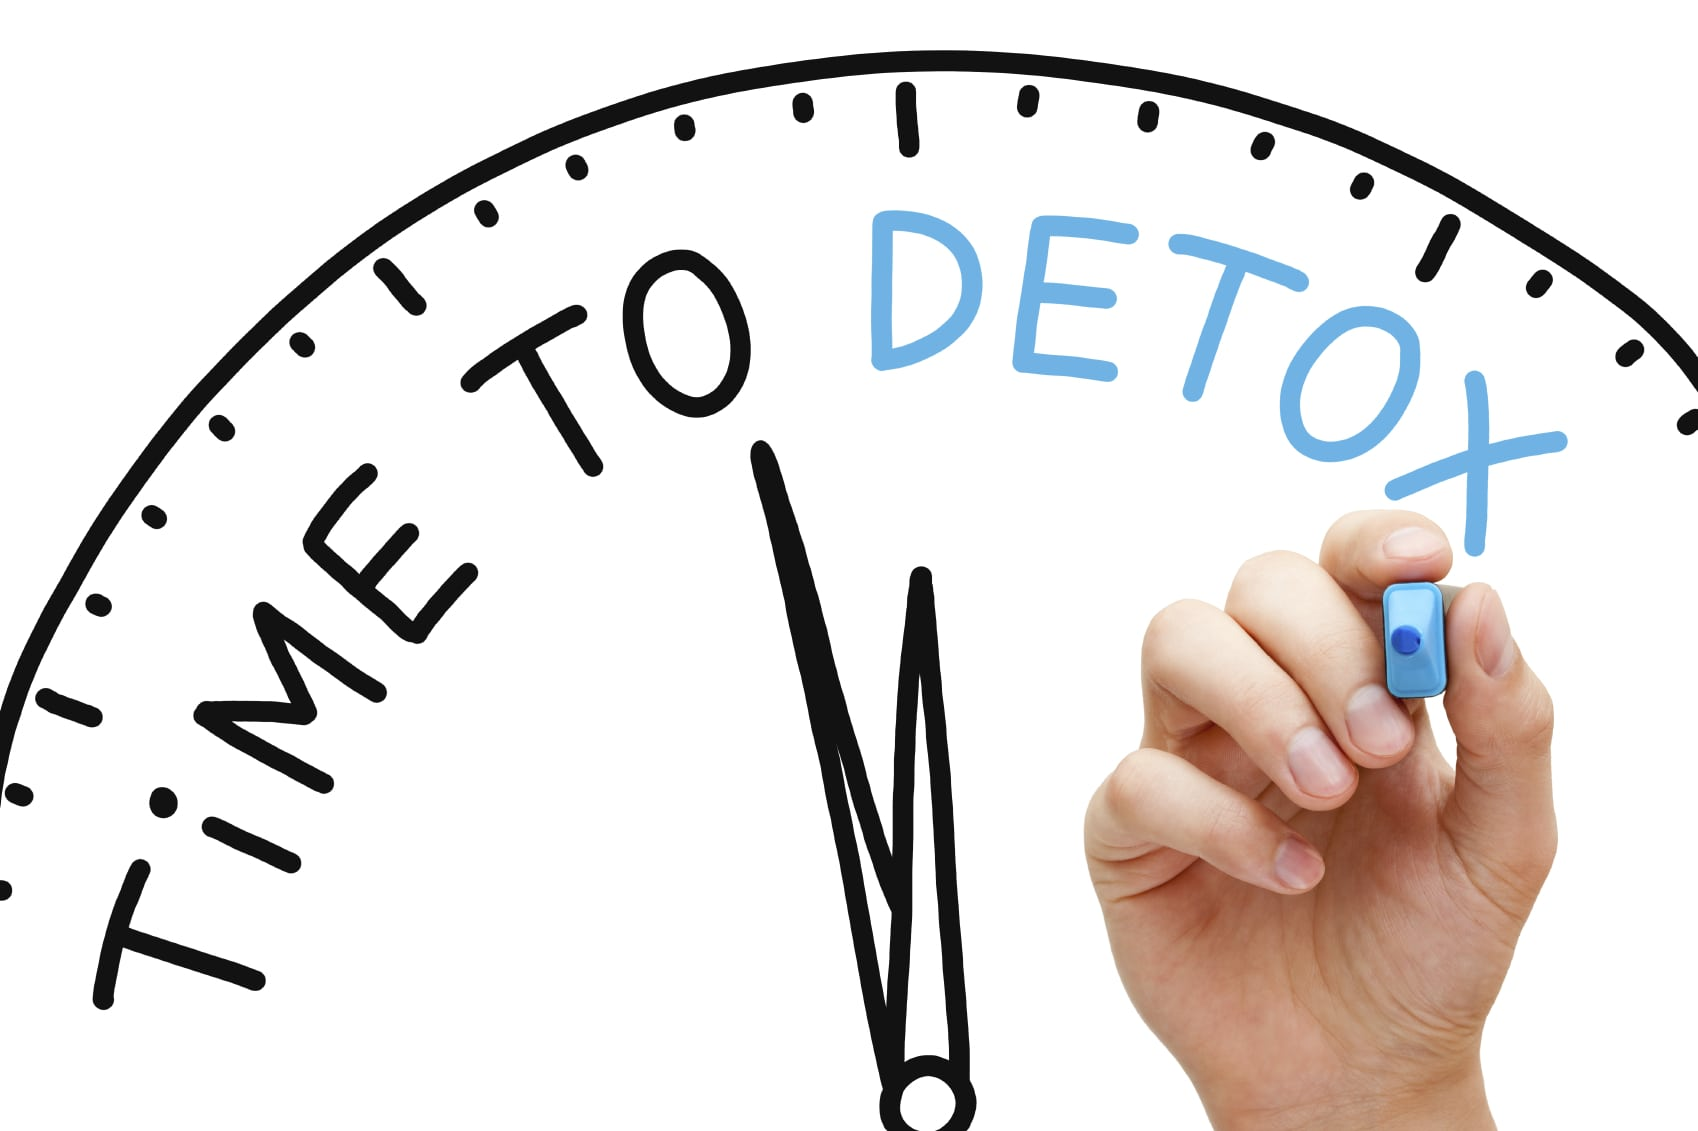 Why Detox Diets Should be Reconsidered